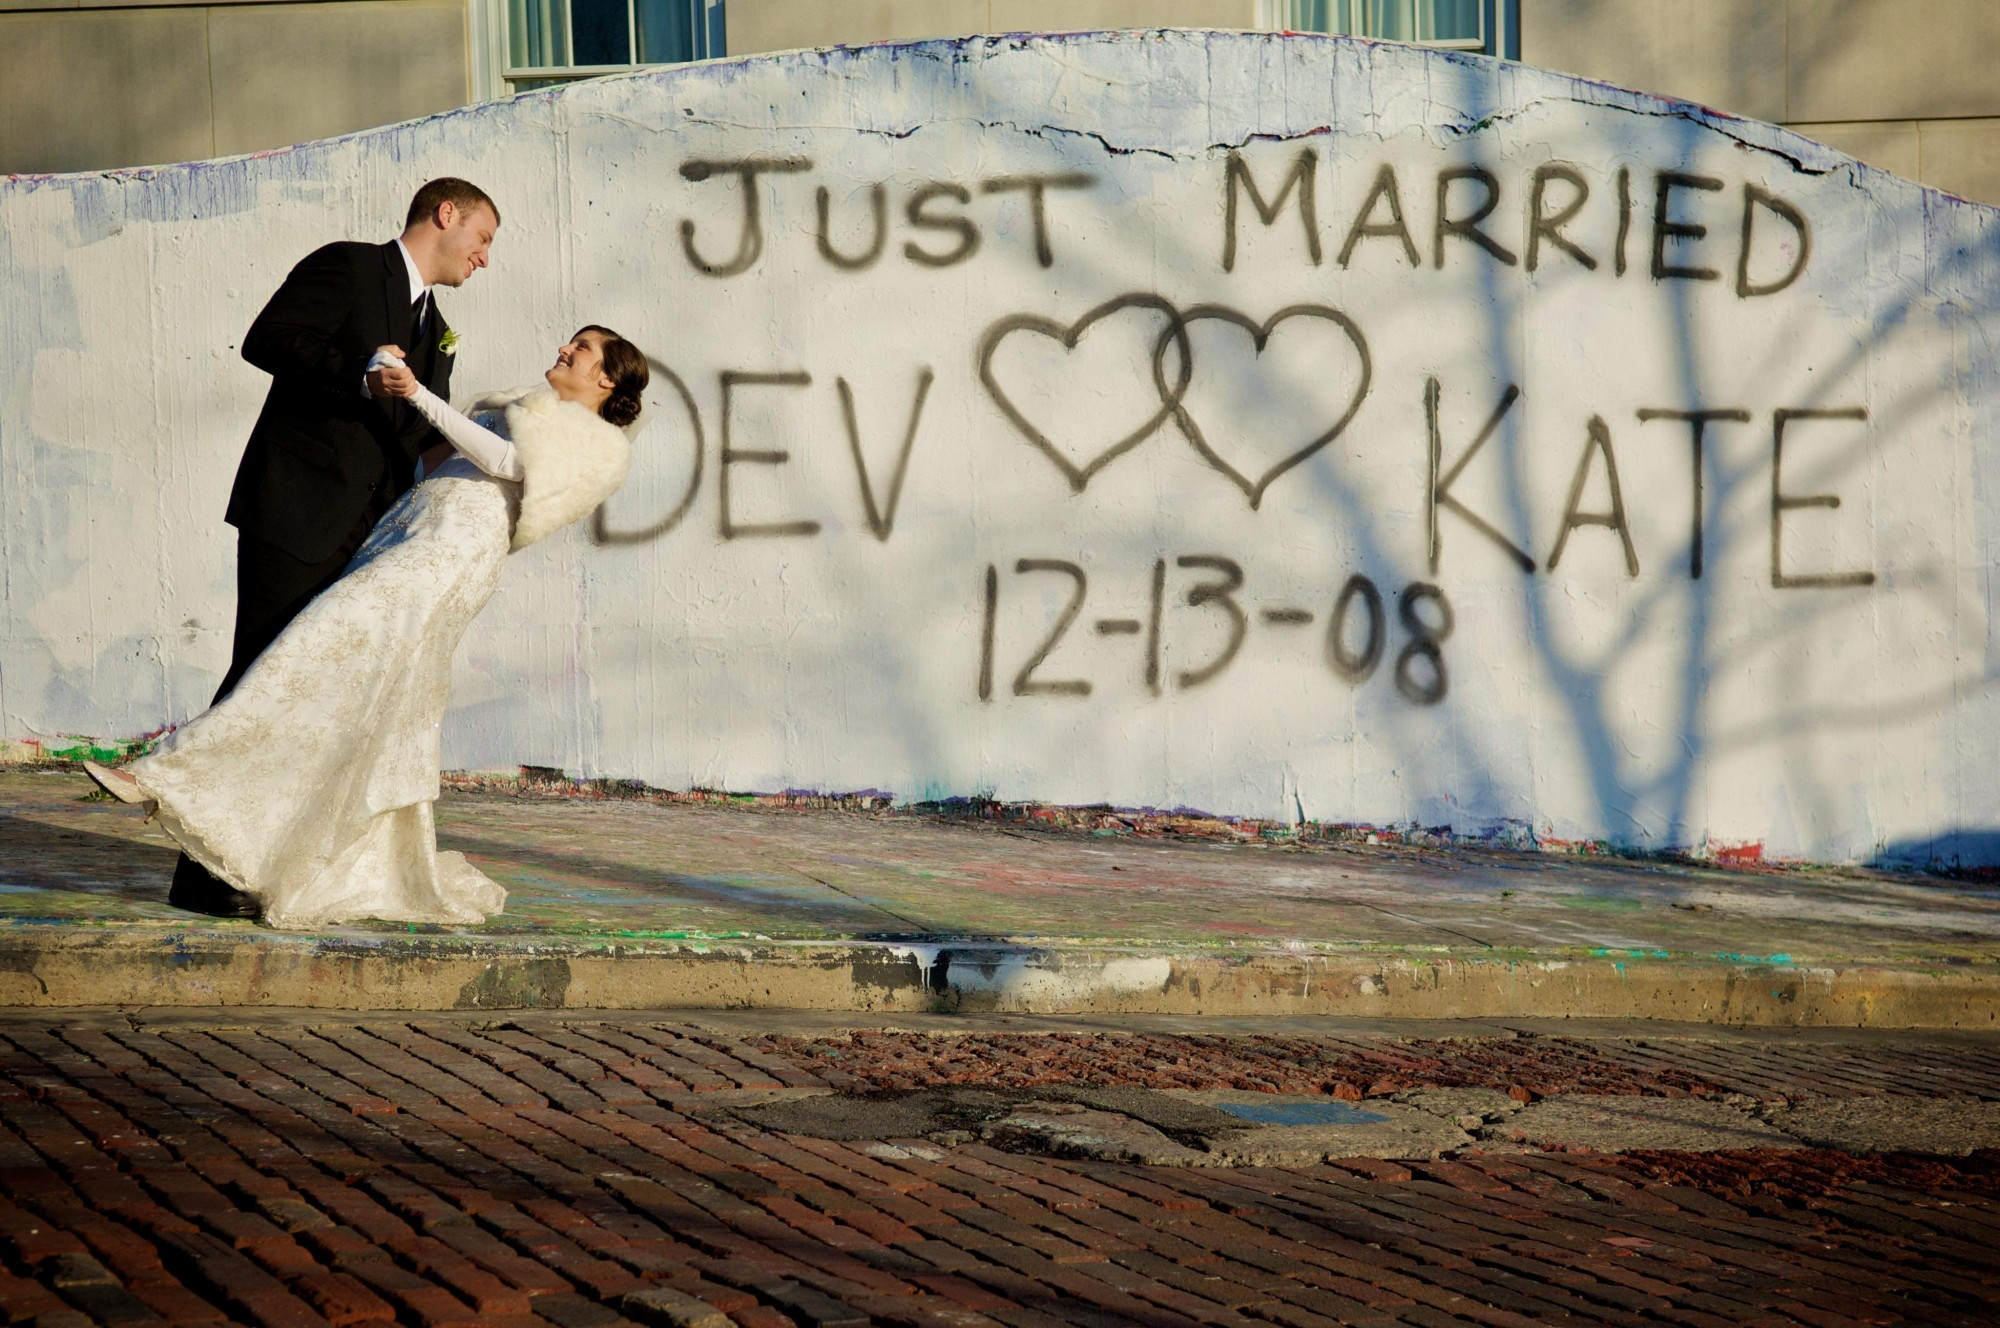 Katie and Devan Cropp pose in front of the graffiti walls after their wedding.